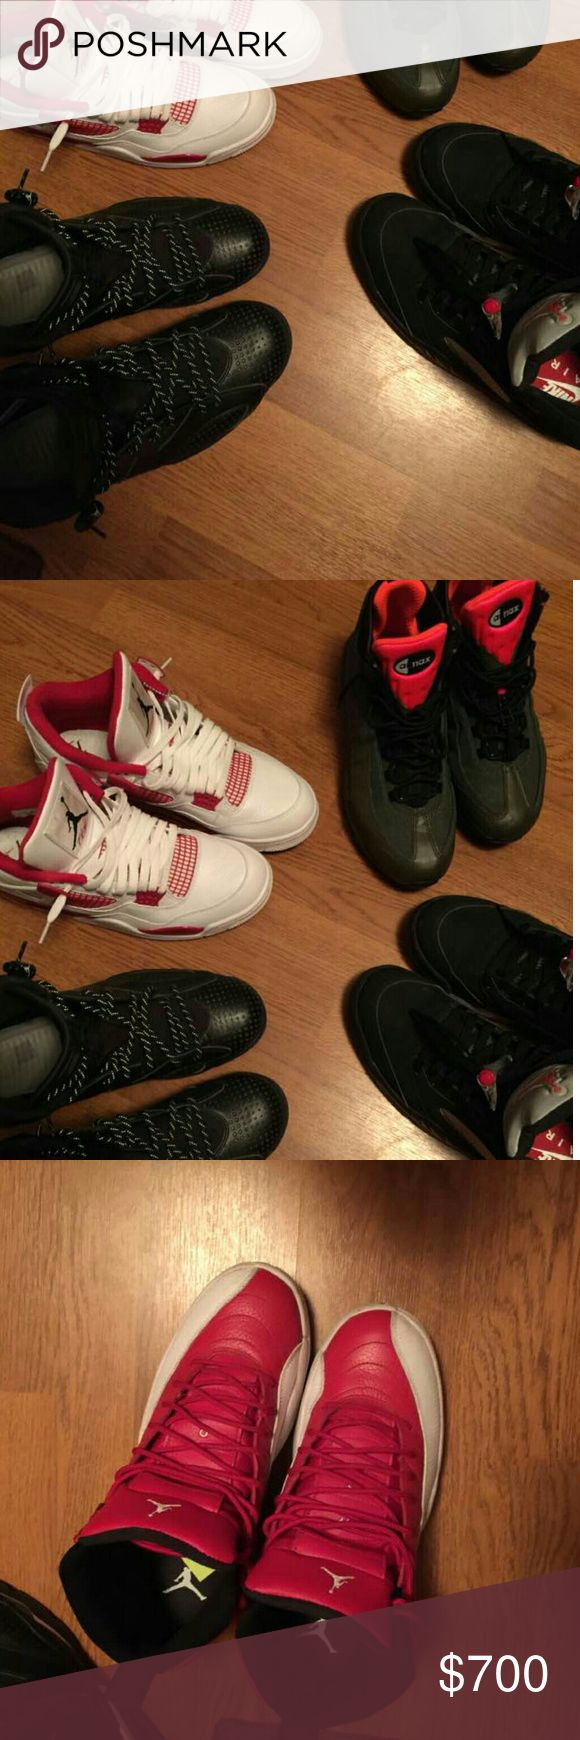 Jordans I have Gym red 12's Mettalic silver 5's Black Cat 6's Alternate 4's and 95 Airmax boot they are size 10 &10.5 I looking for trades for foamposites and Kobes but I'll accept other offers any questions feel free to text my number In the picture Jordan Shoes Sneakers